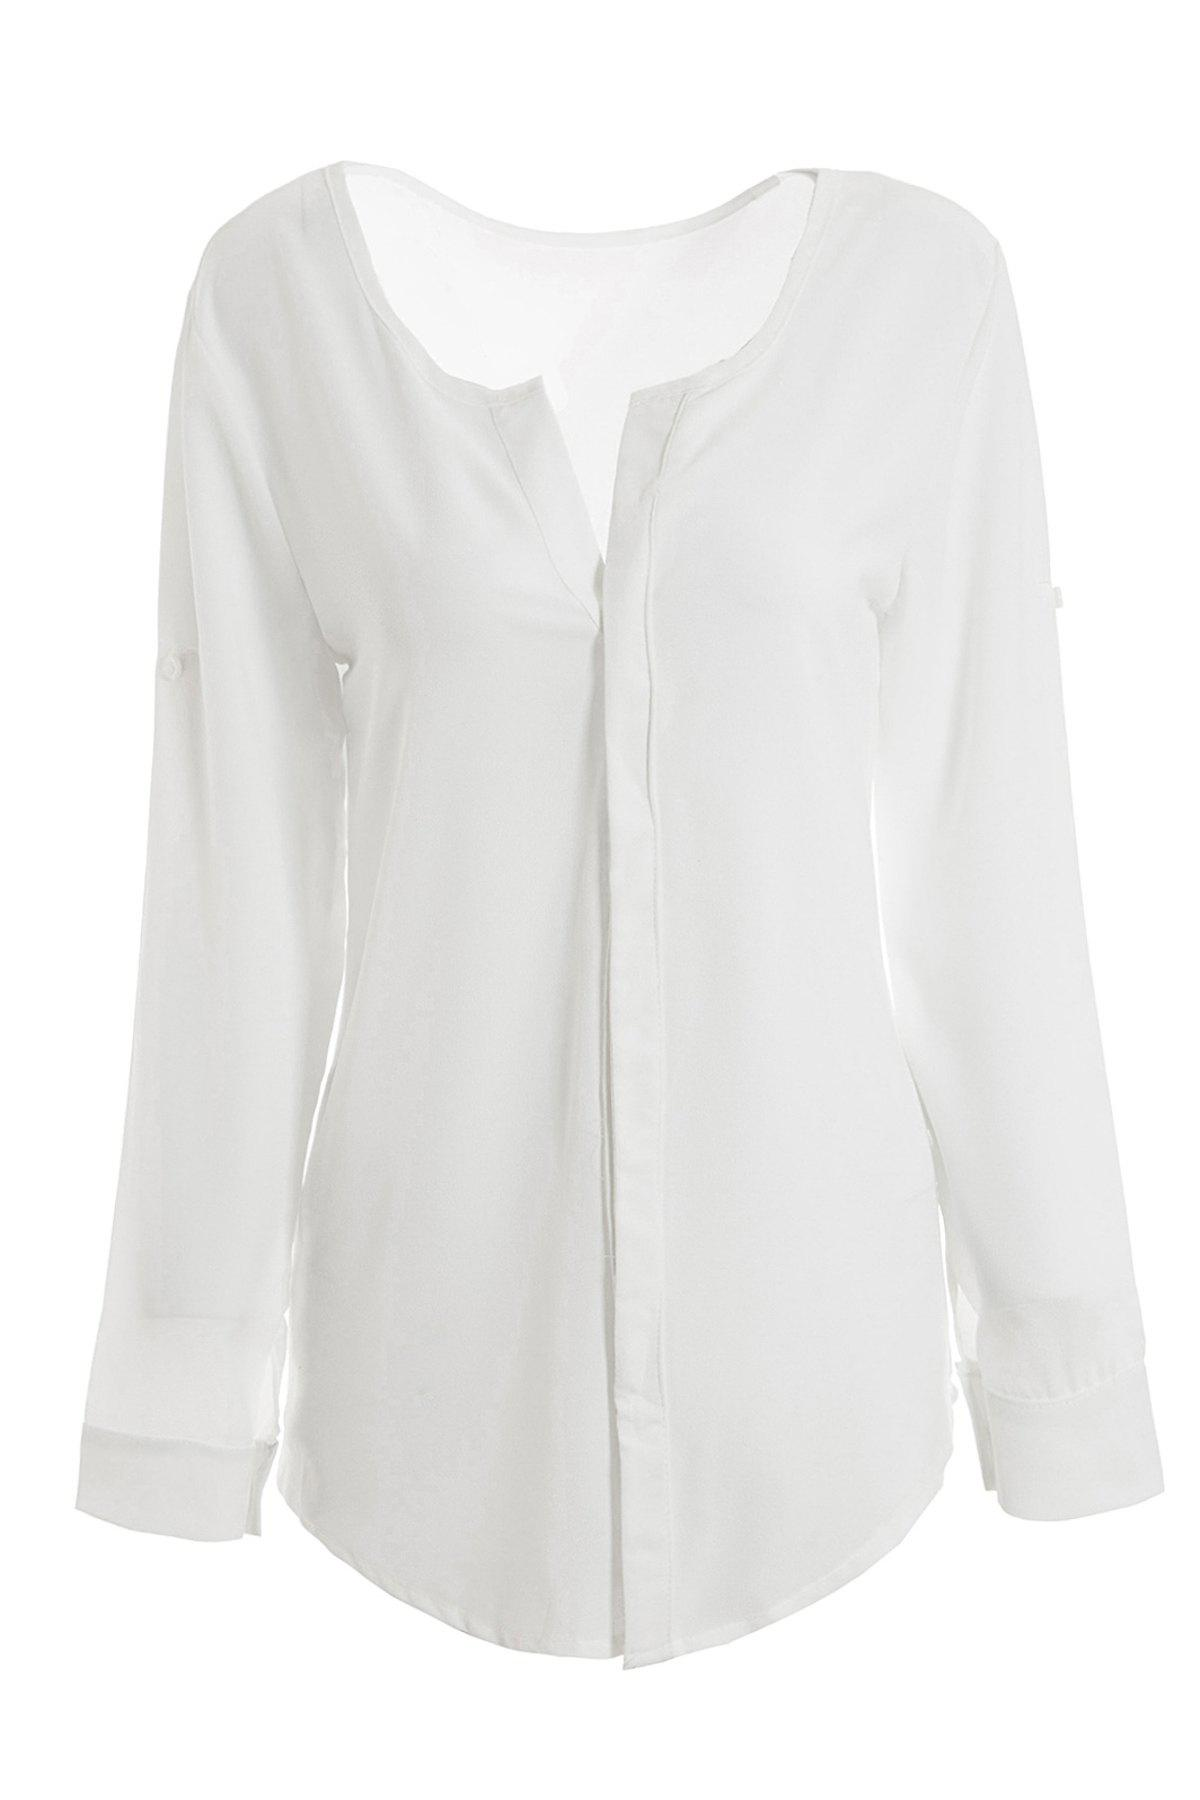 Women's Fashional Solid Color Long Sleeve Chiffon Shirt - WHITE S